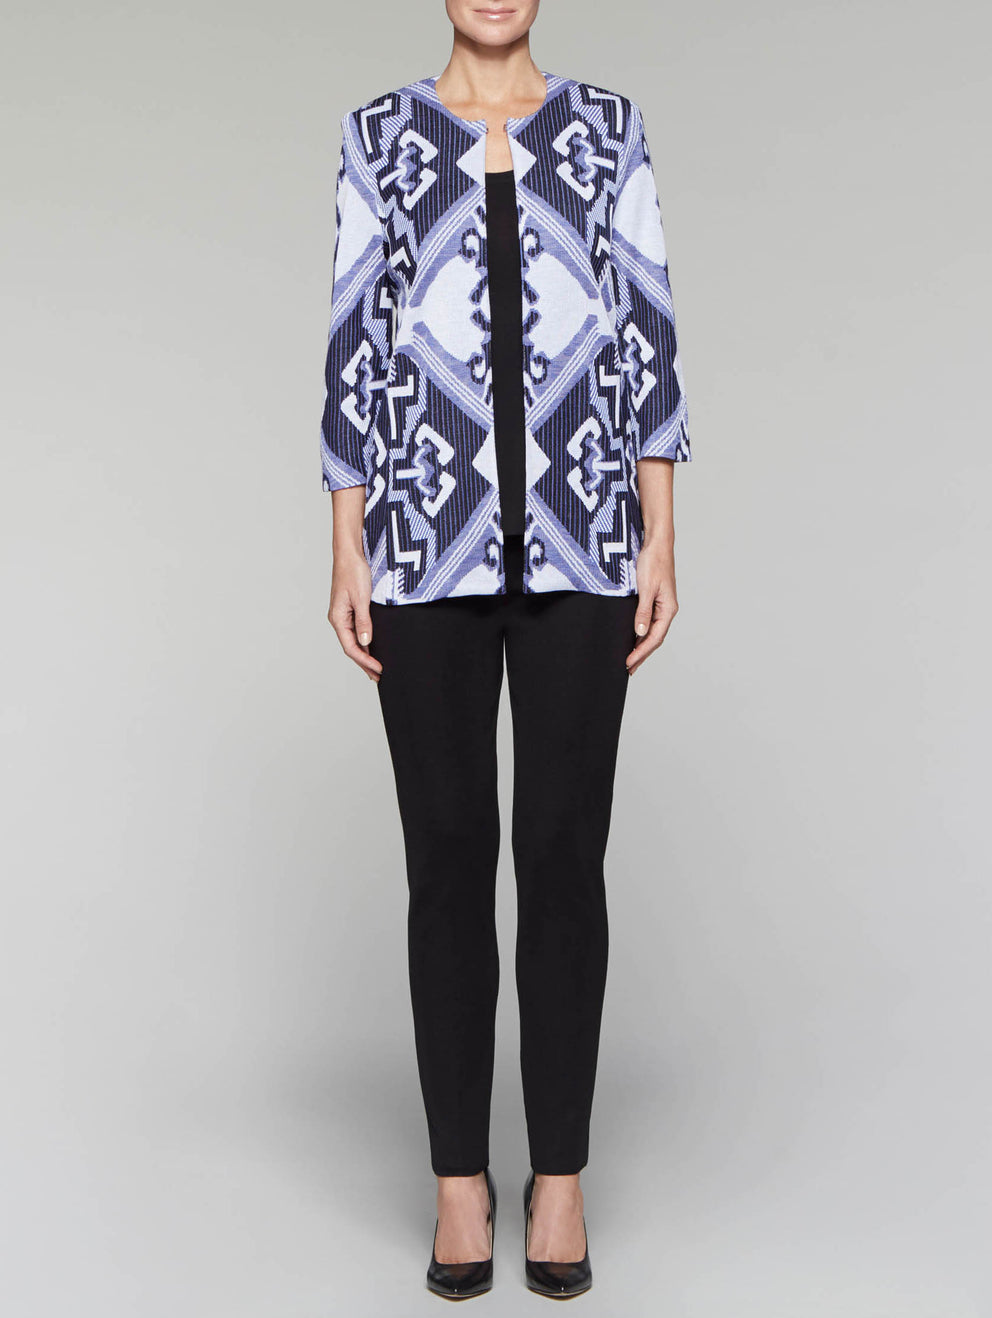 Mirrored Pattern Jacket